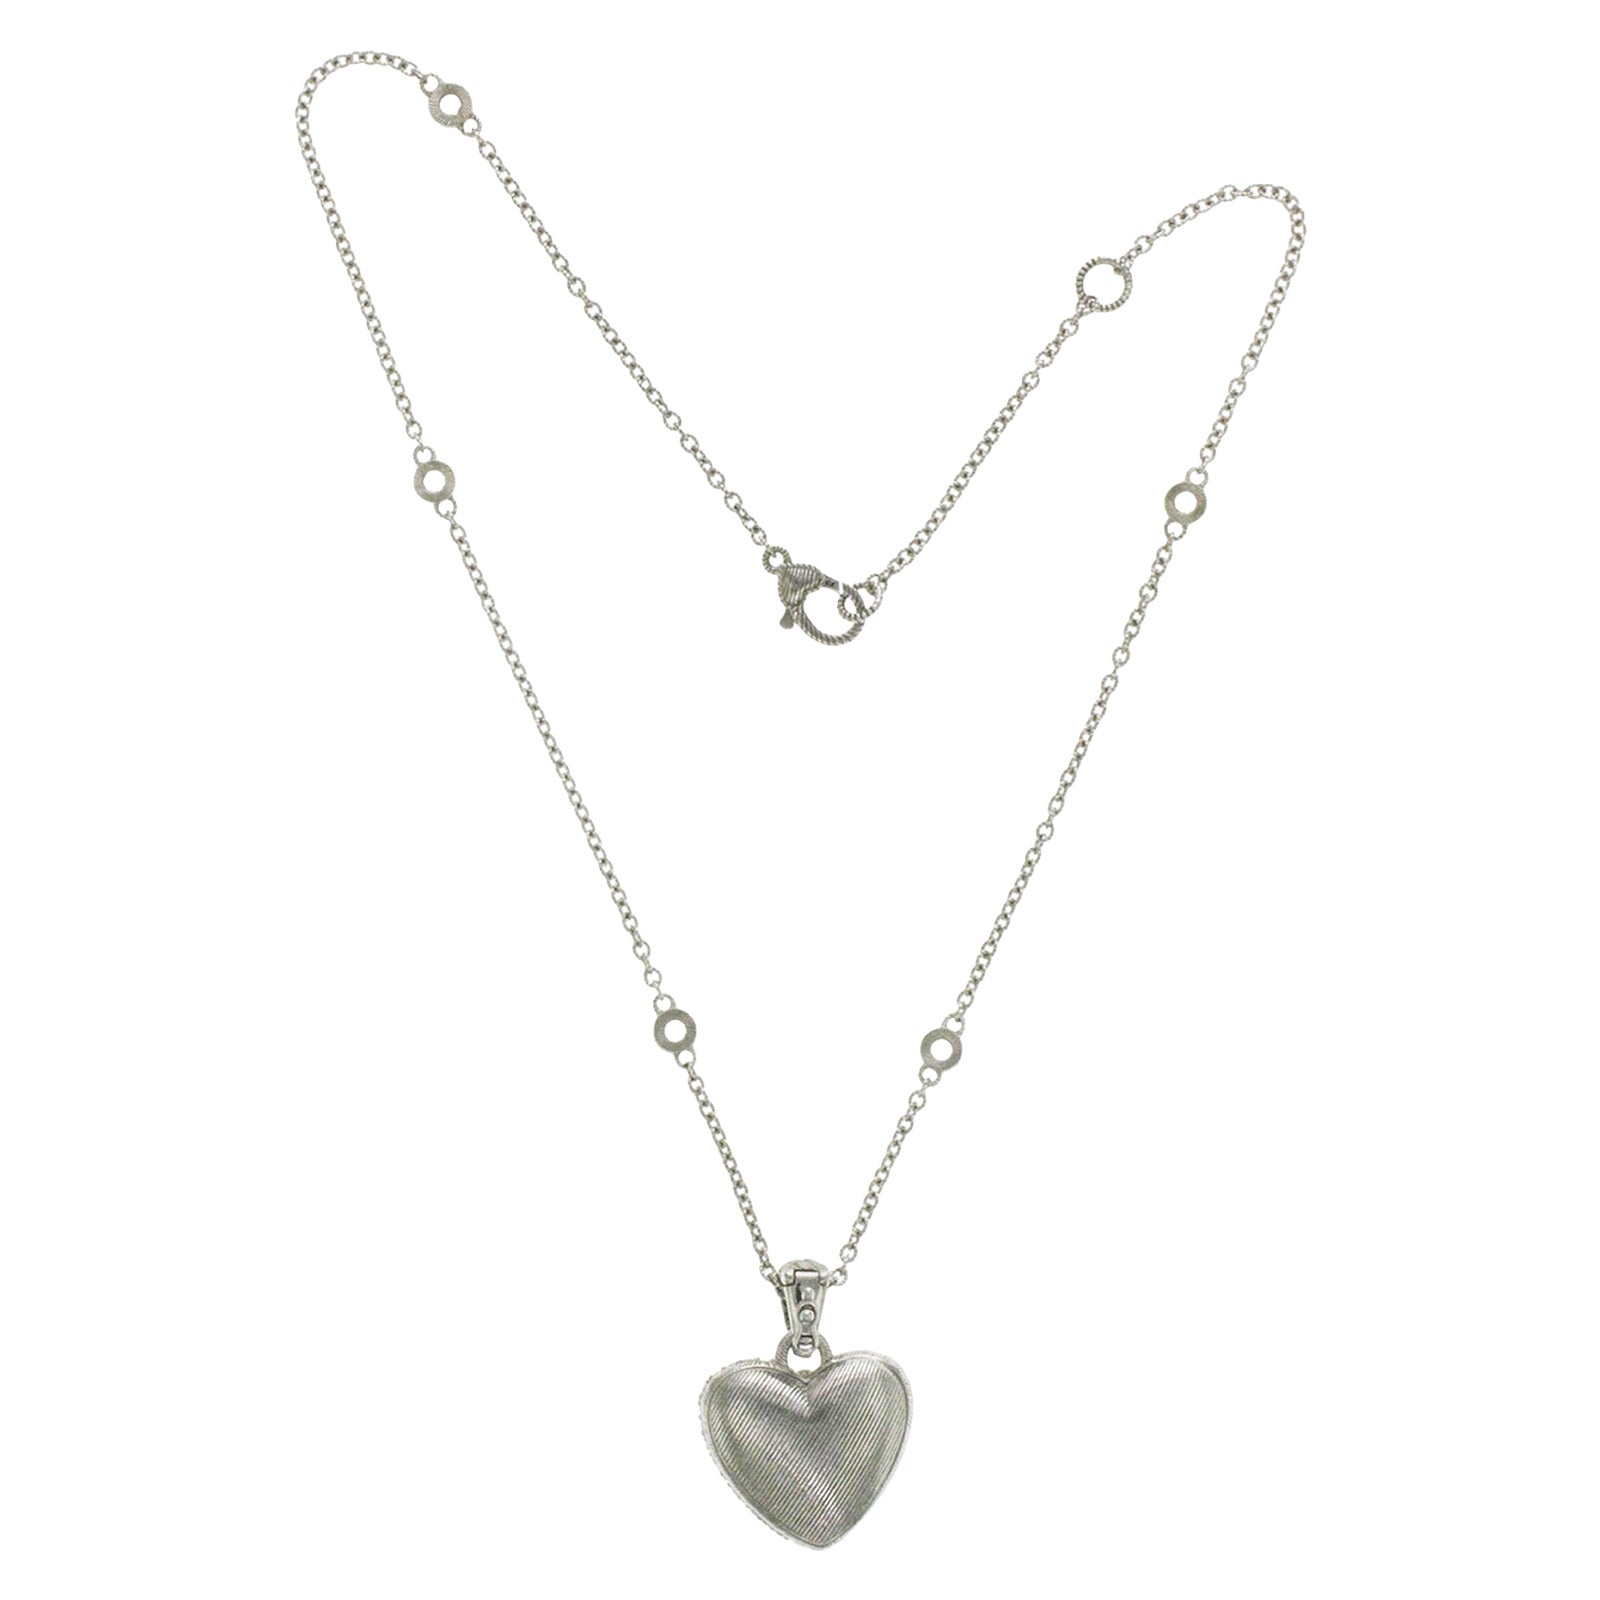 Judith Ripka 925 Sterling Silver Diamonique Heart Pendant Necklace